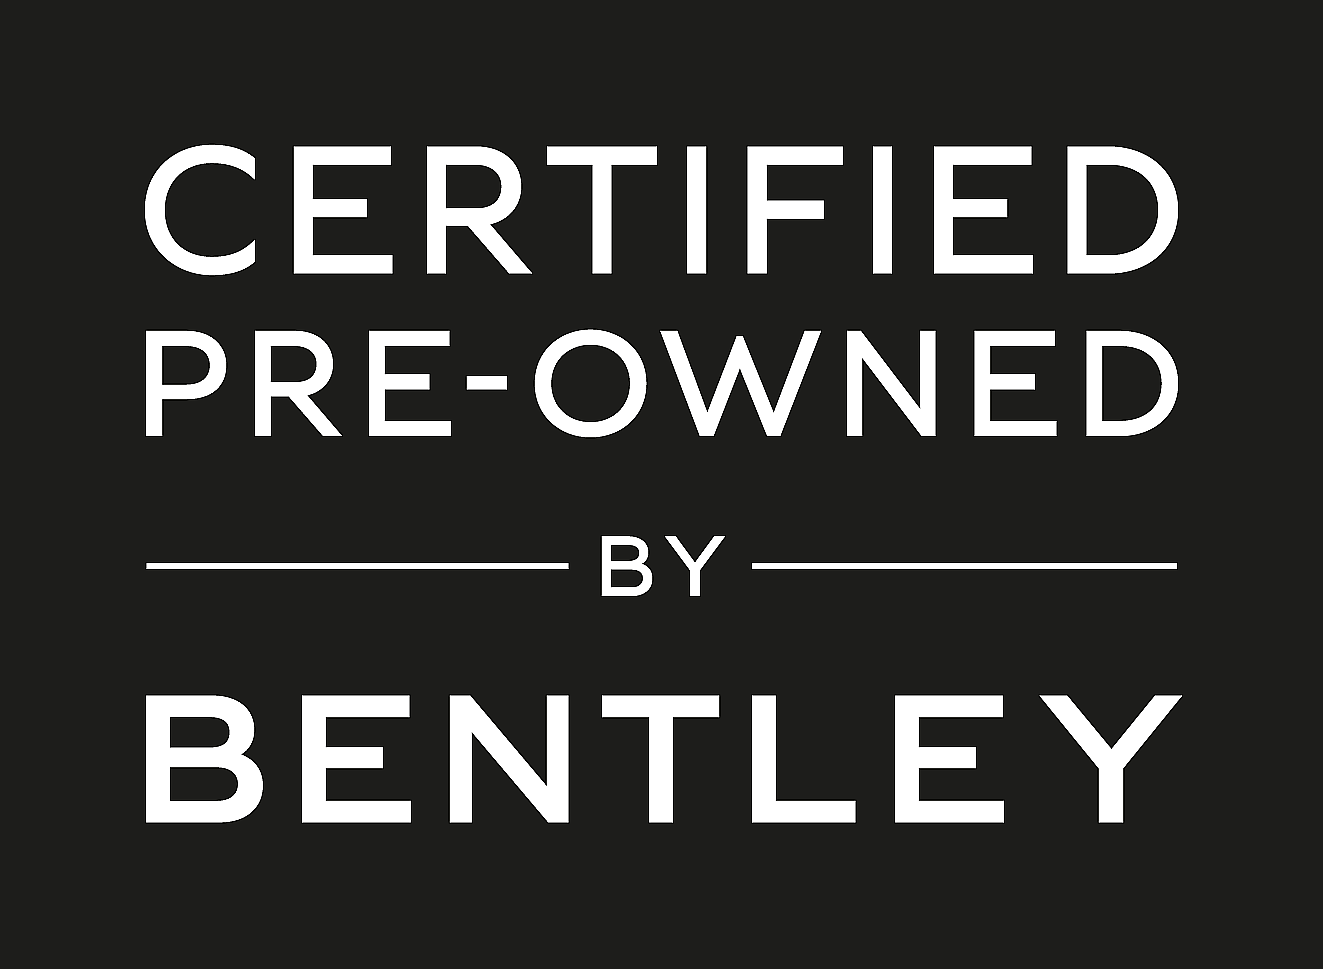 Certified Pre-Owned by Bentley